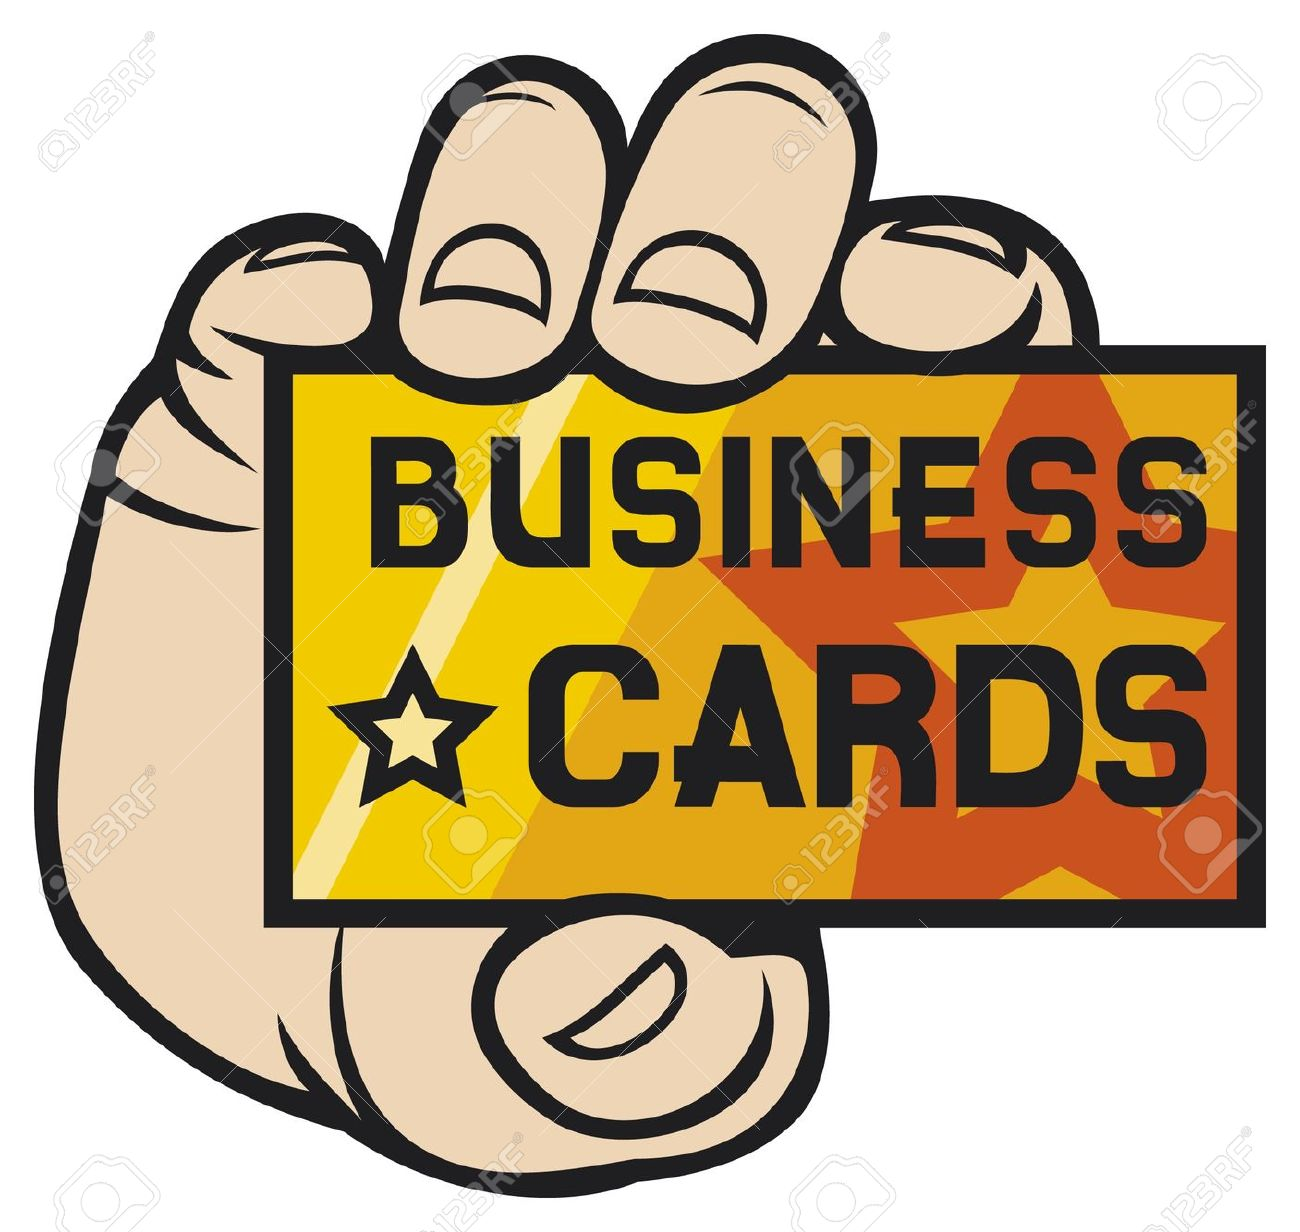 Vibrant free business card. Cards clipart vector